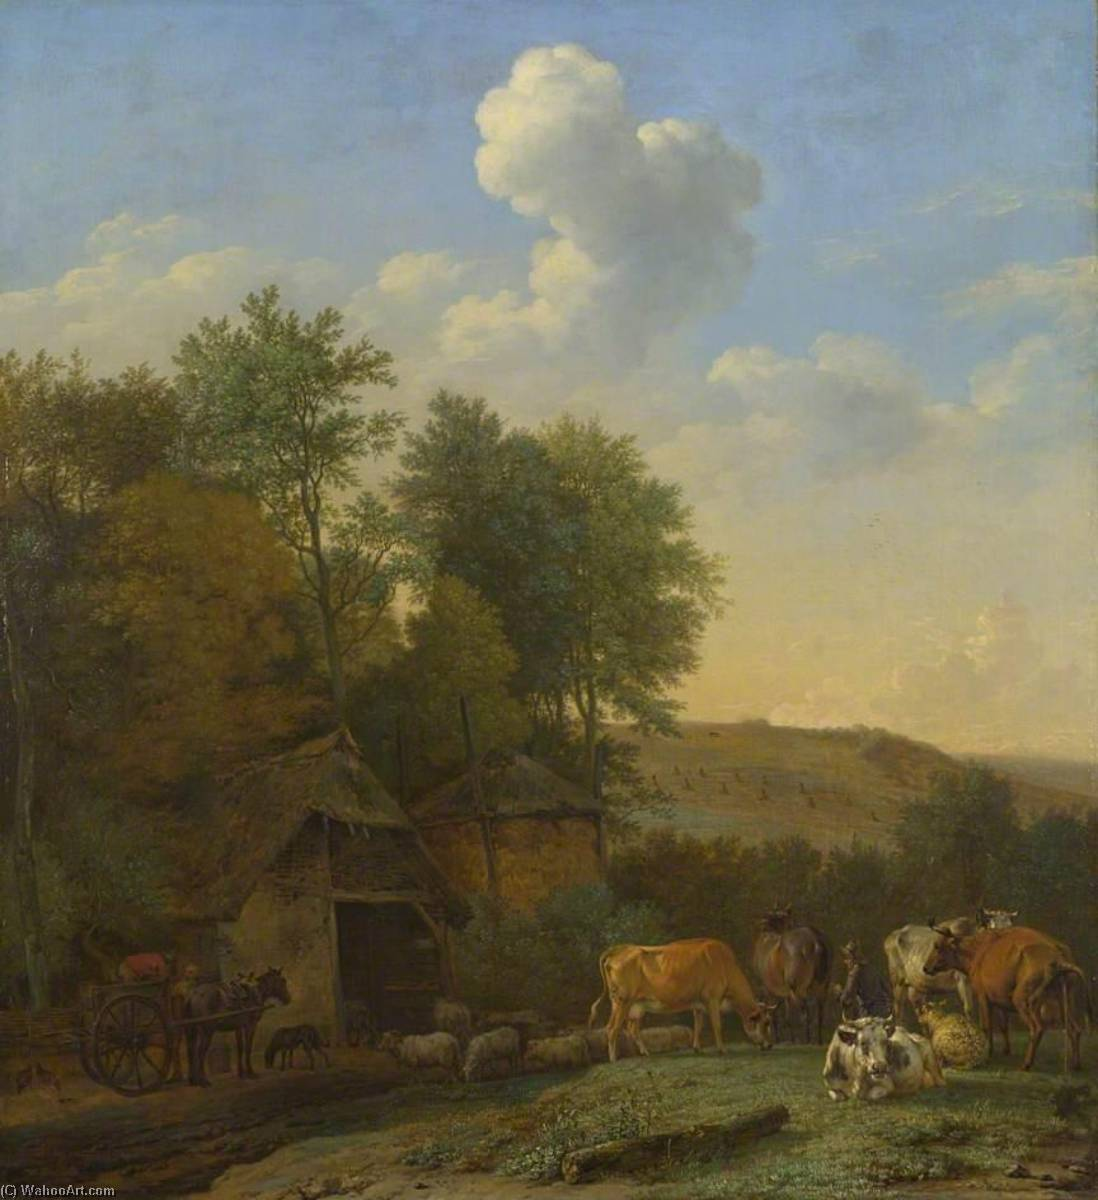 Landscape with Cows, Sheep and Horses by a Barn, 1651 by Paulus Pietersz Potter (1625-1654, Netherlands) | Painting Copy | WahooArt.com